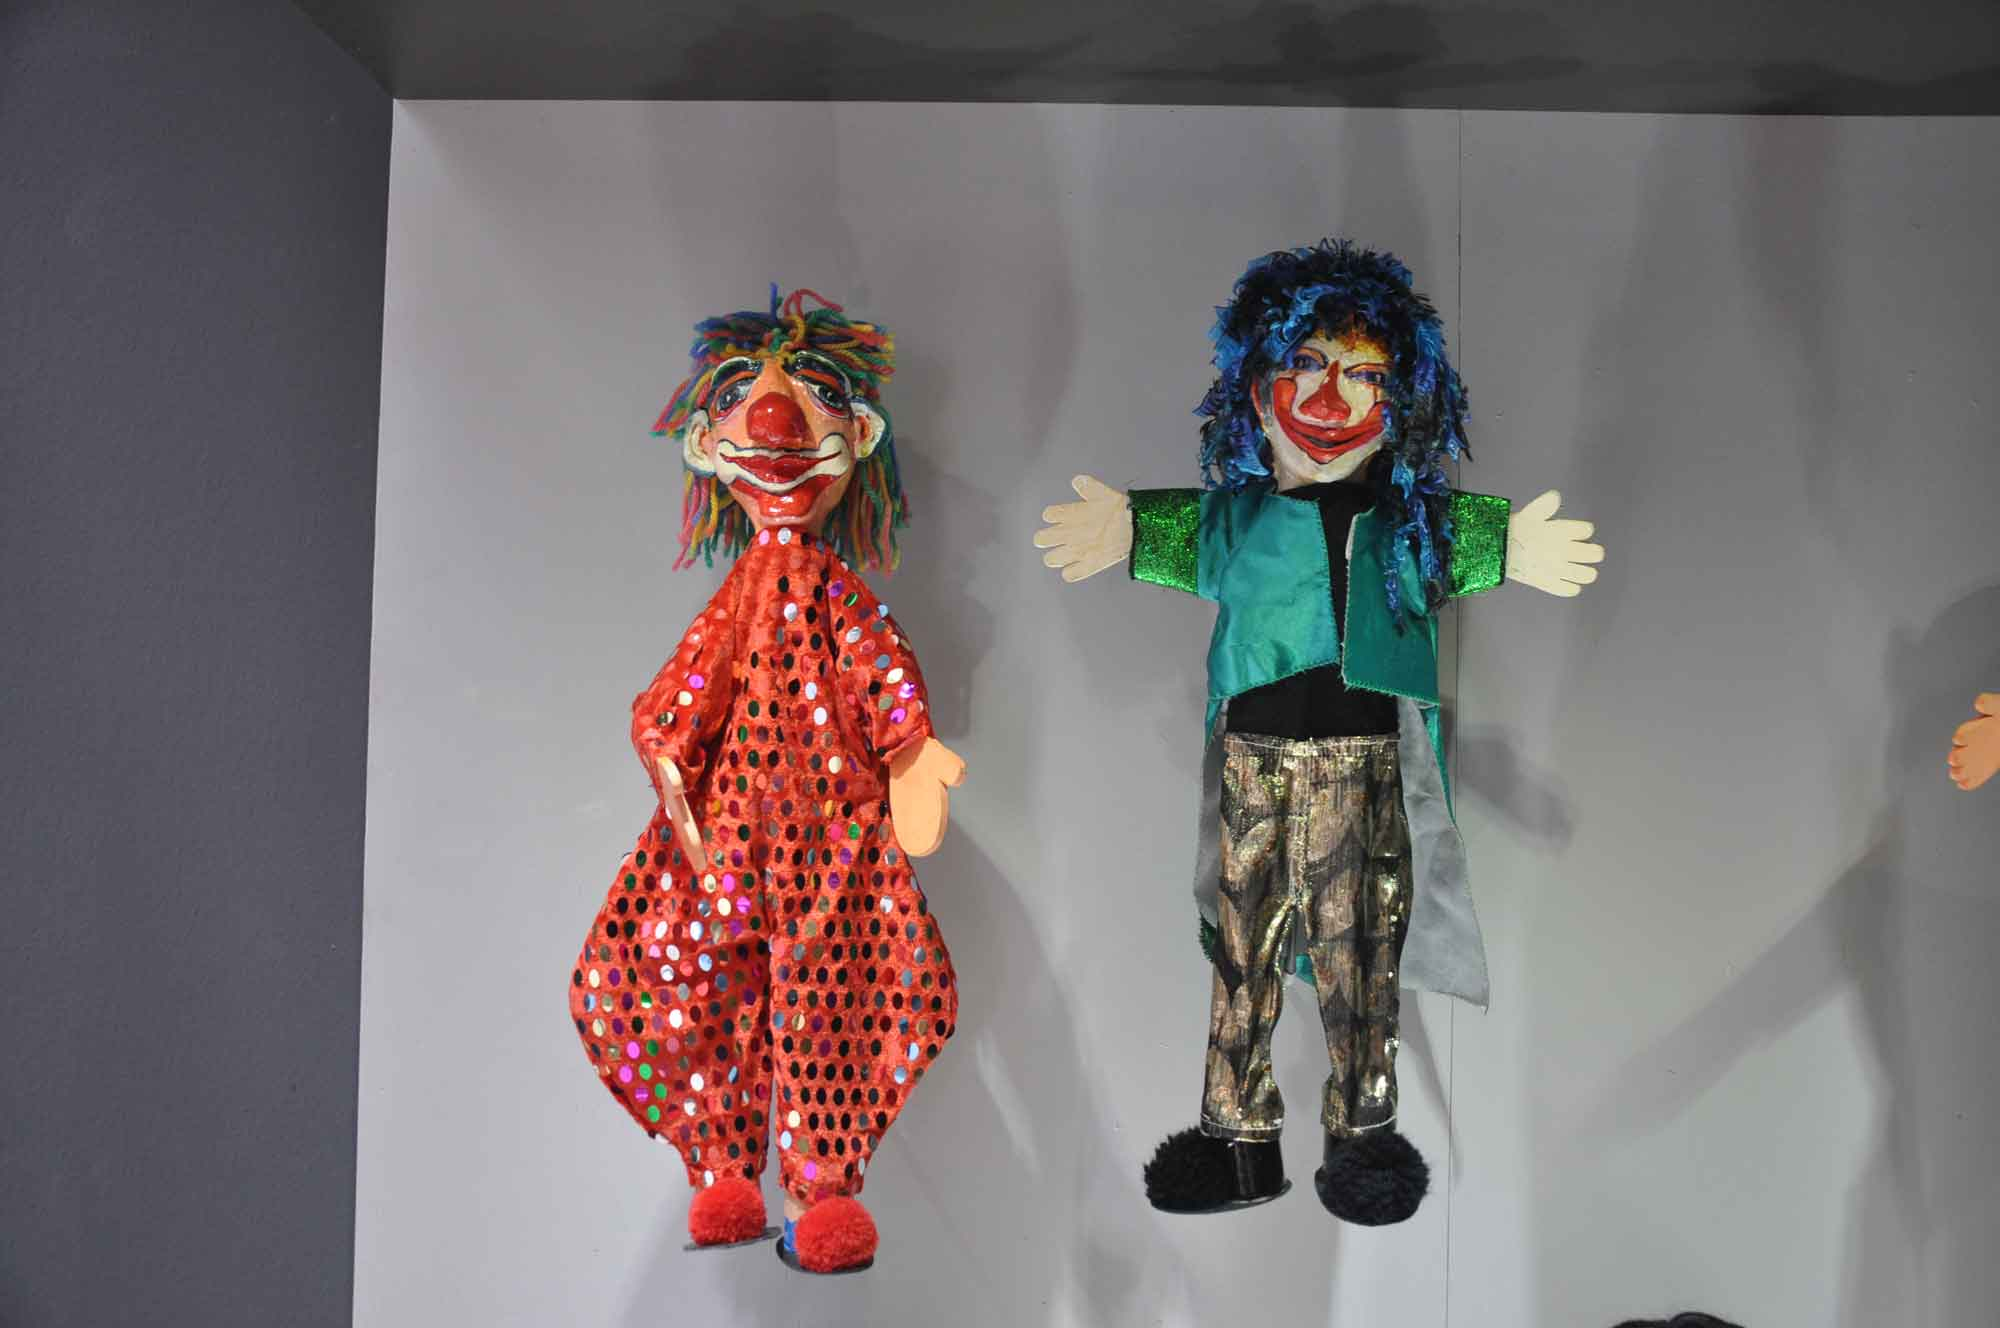 From East to West: the Wonderful World of Puppets